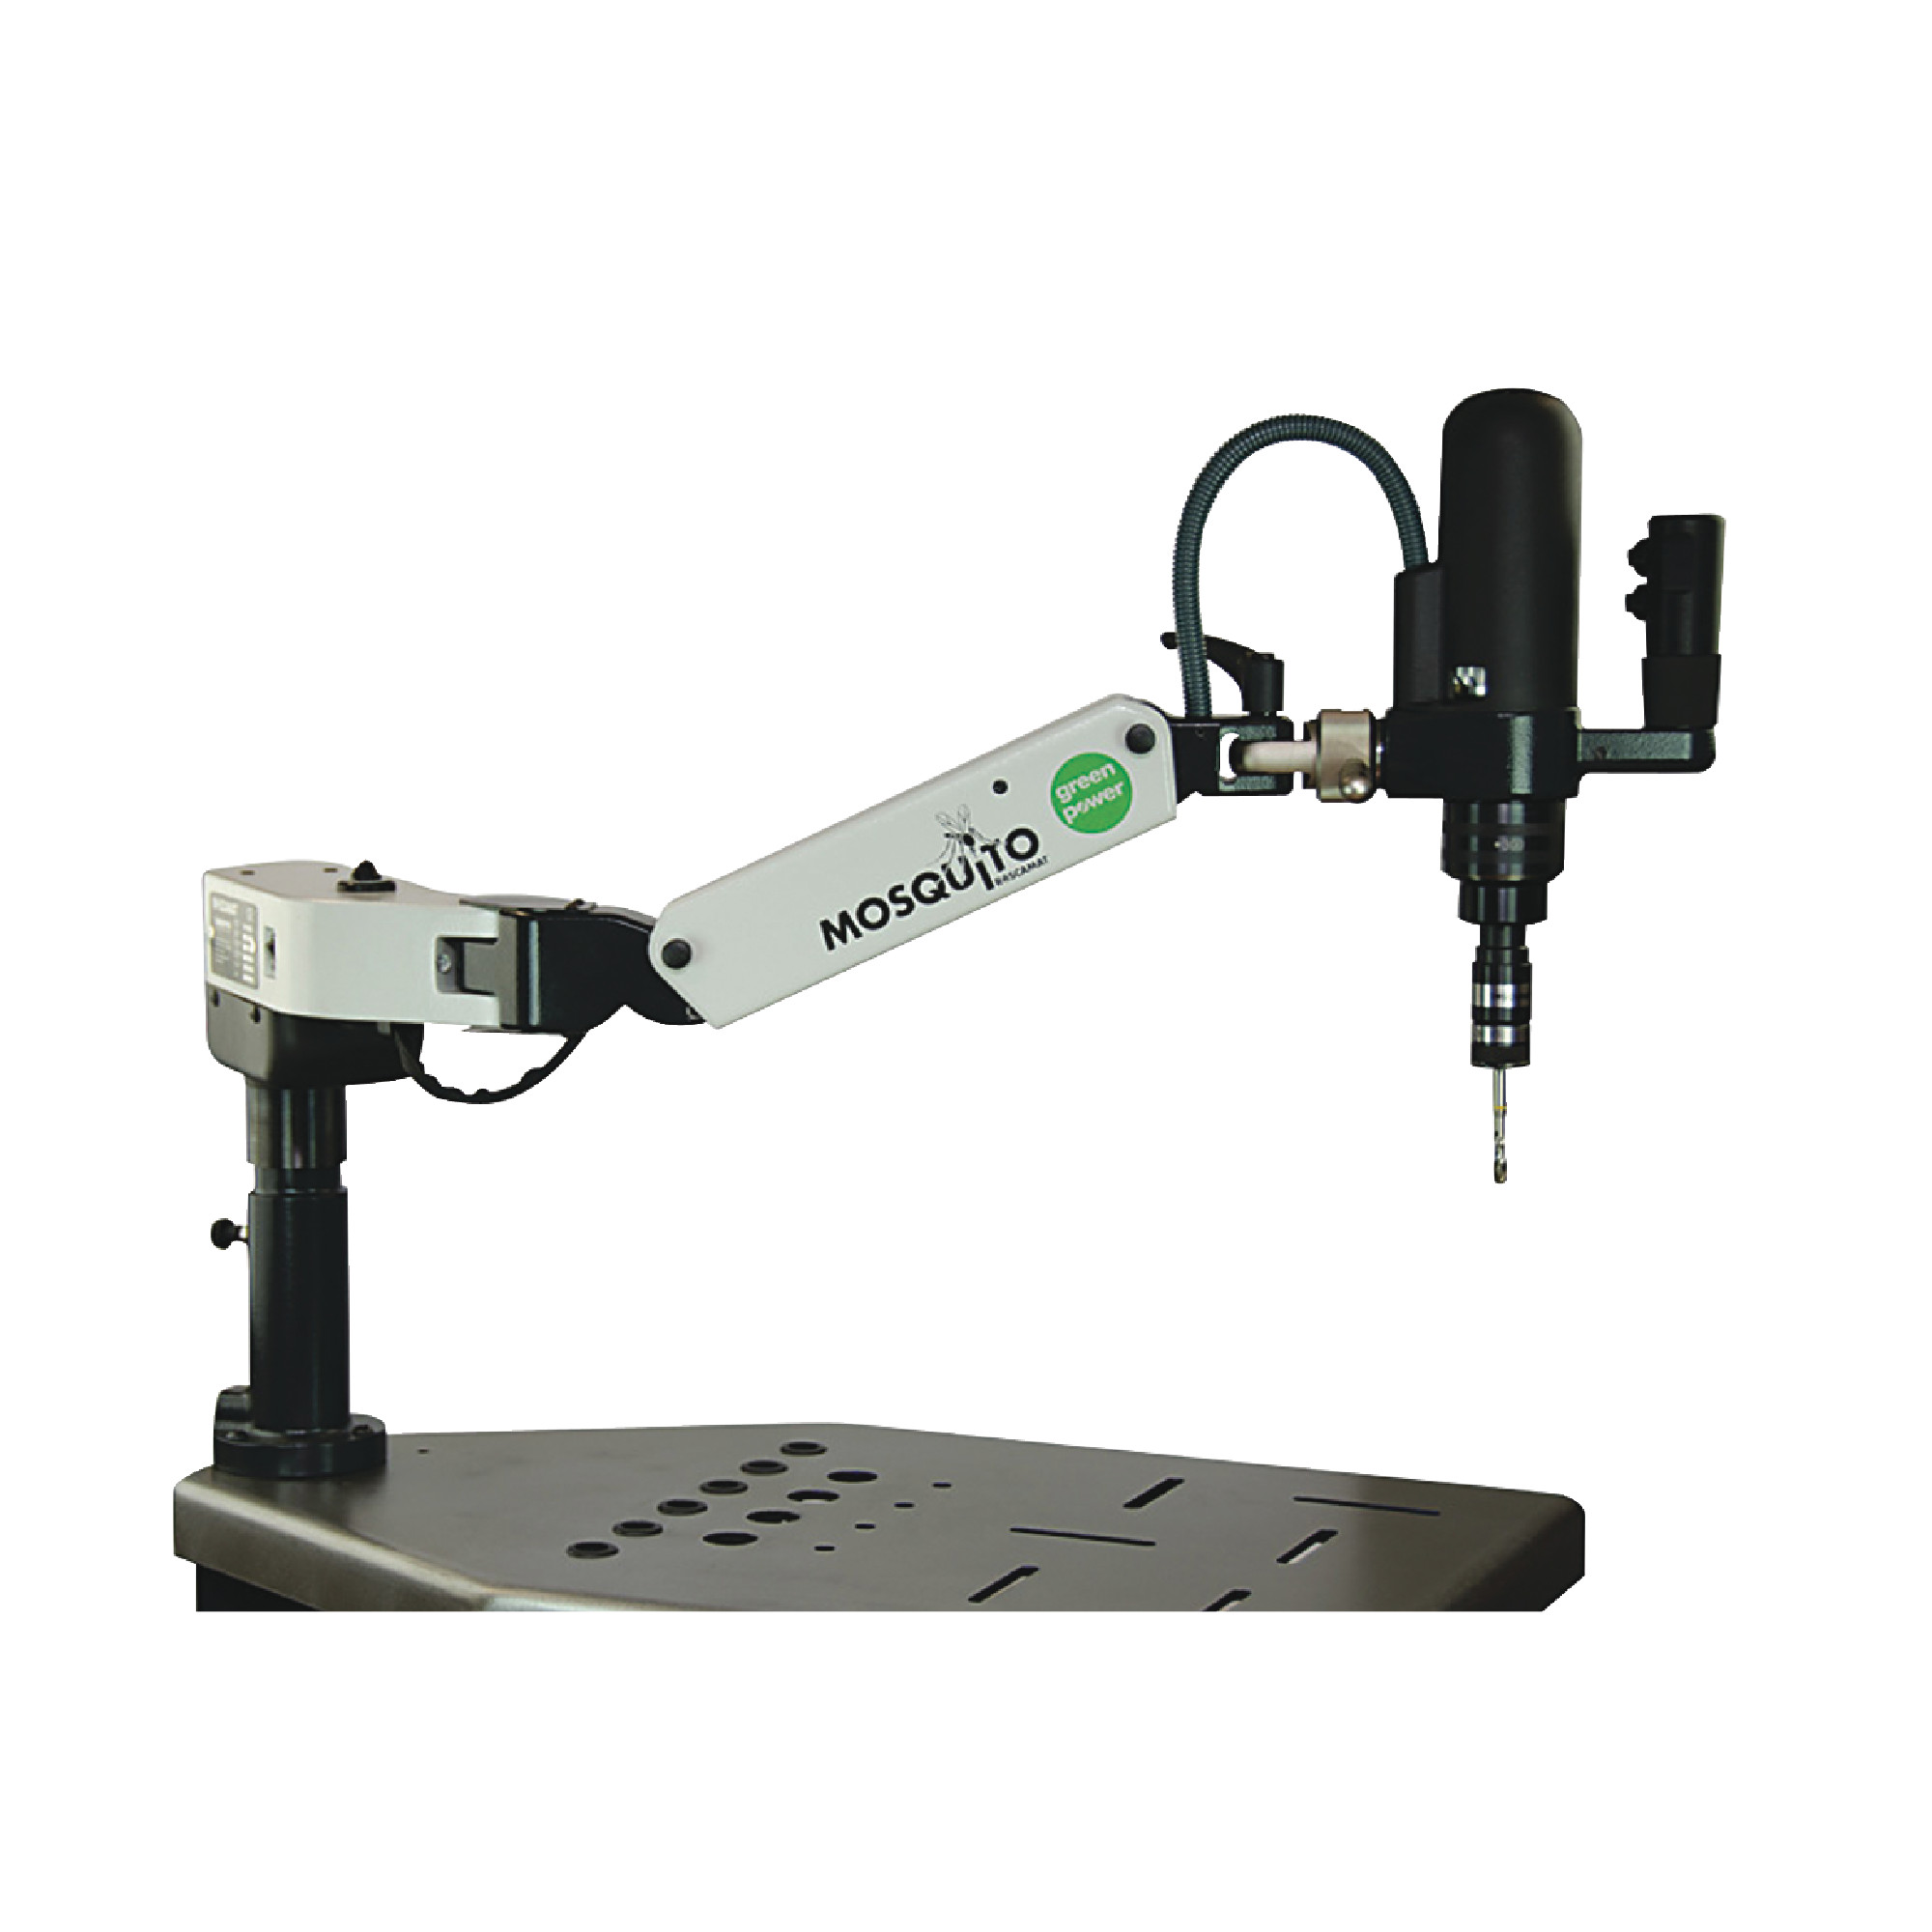 Vertical & Horizontal Tapping Arm